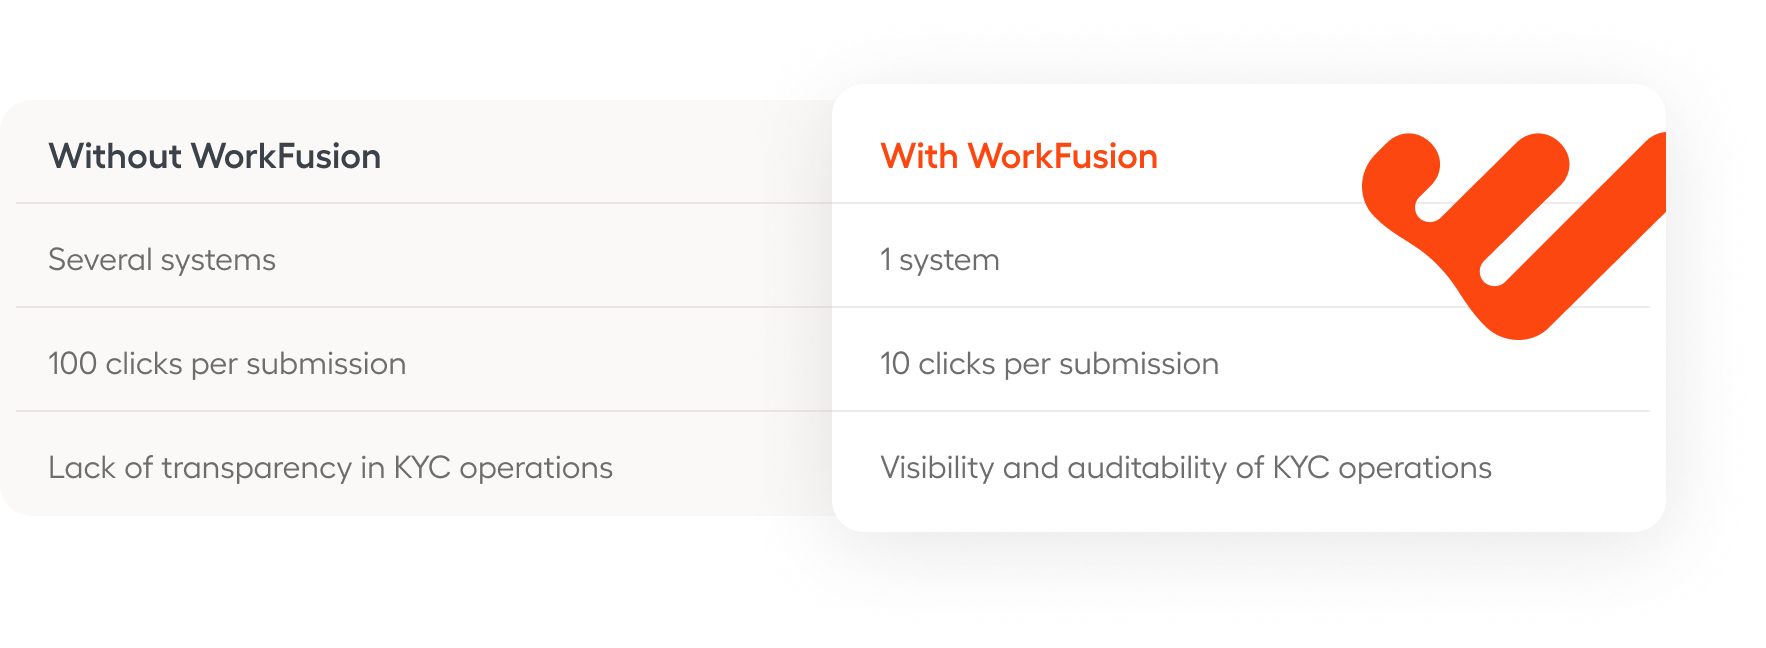 KYC document handling with WorkFusion